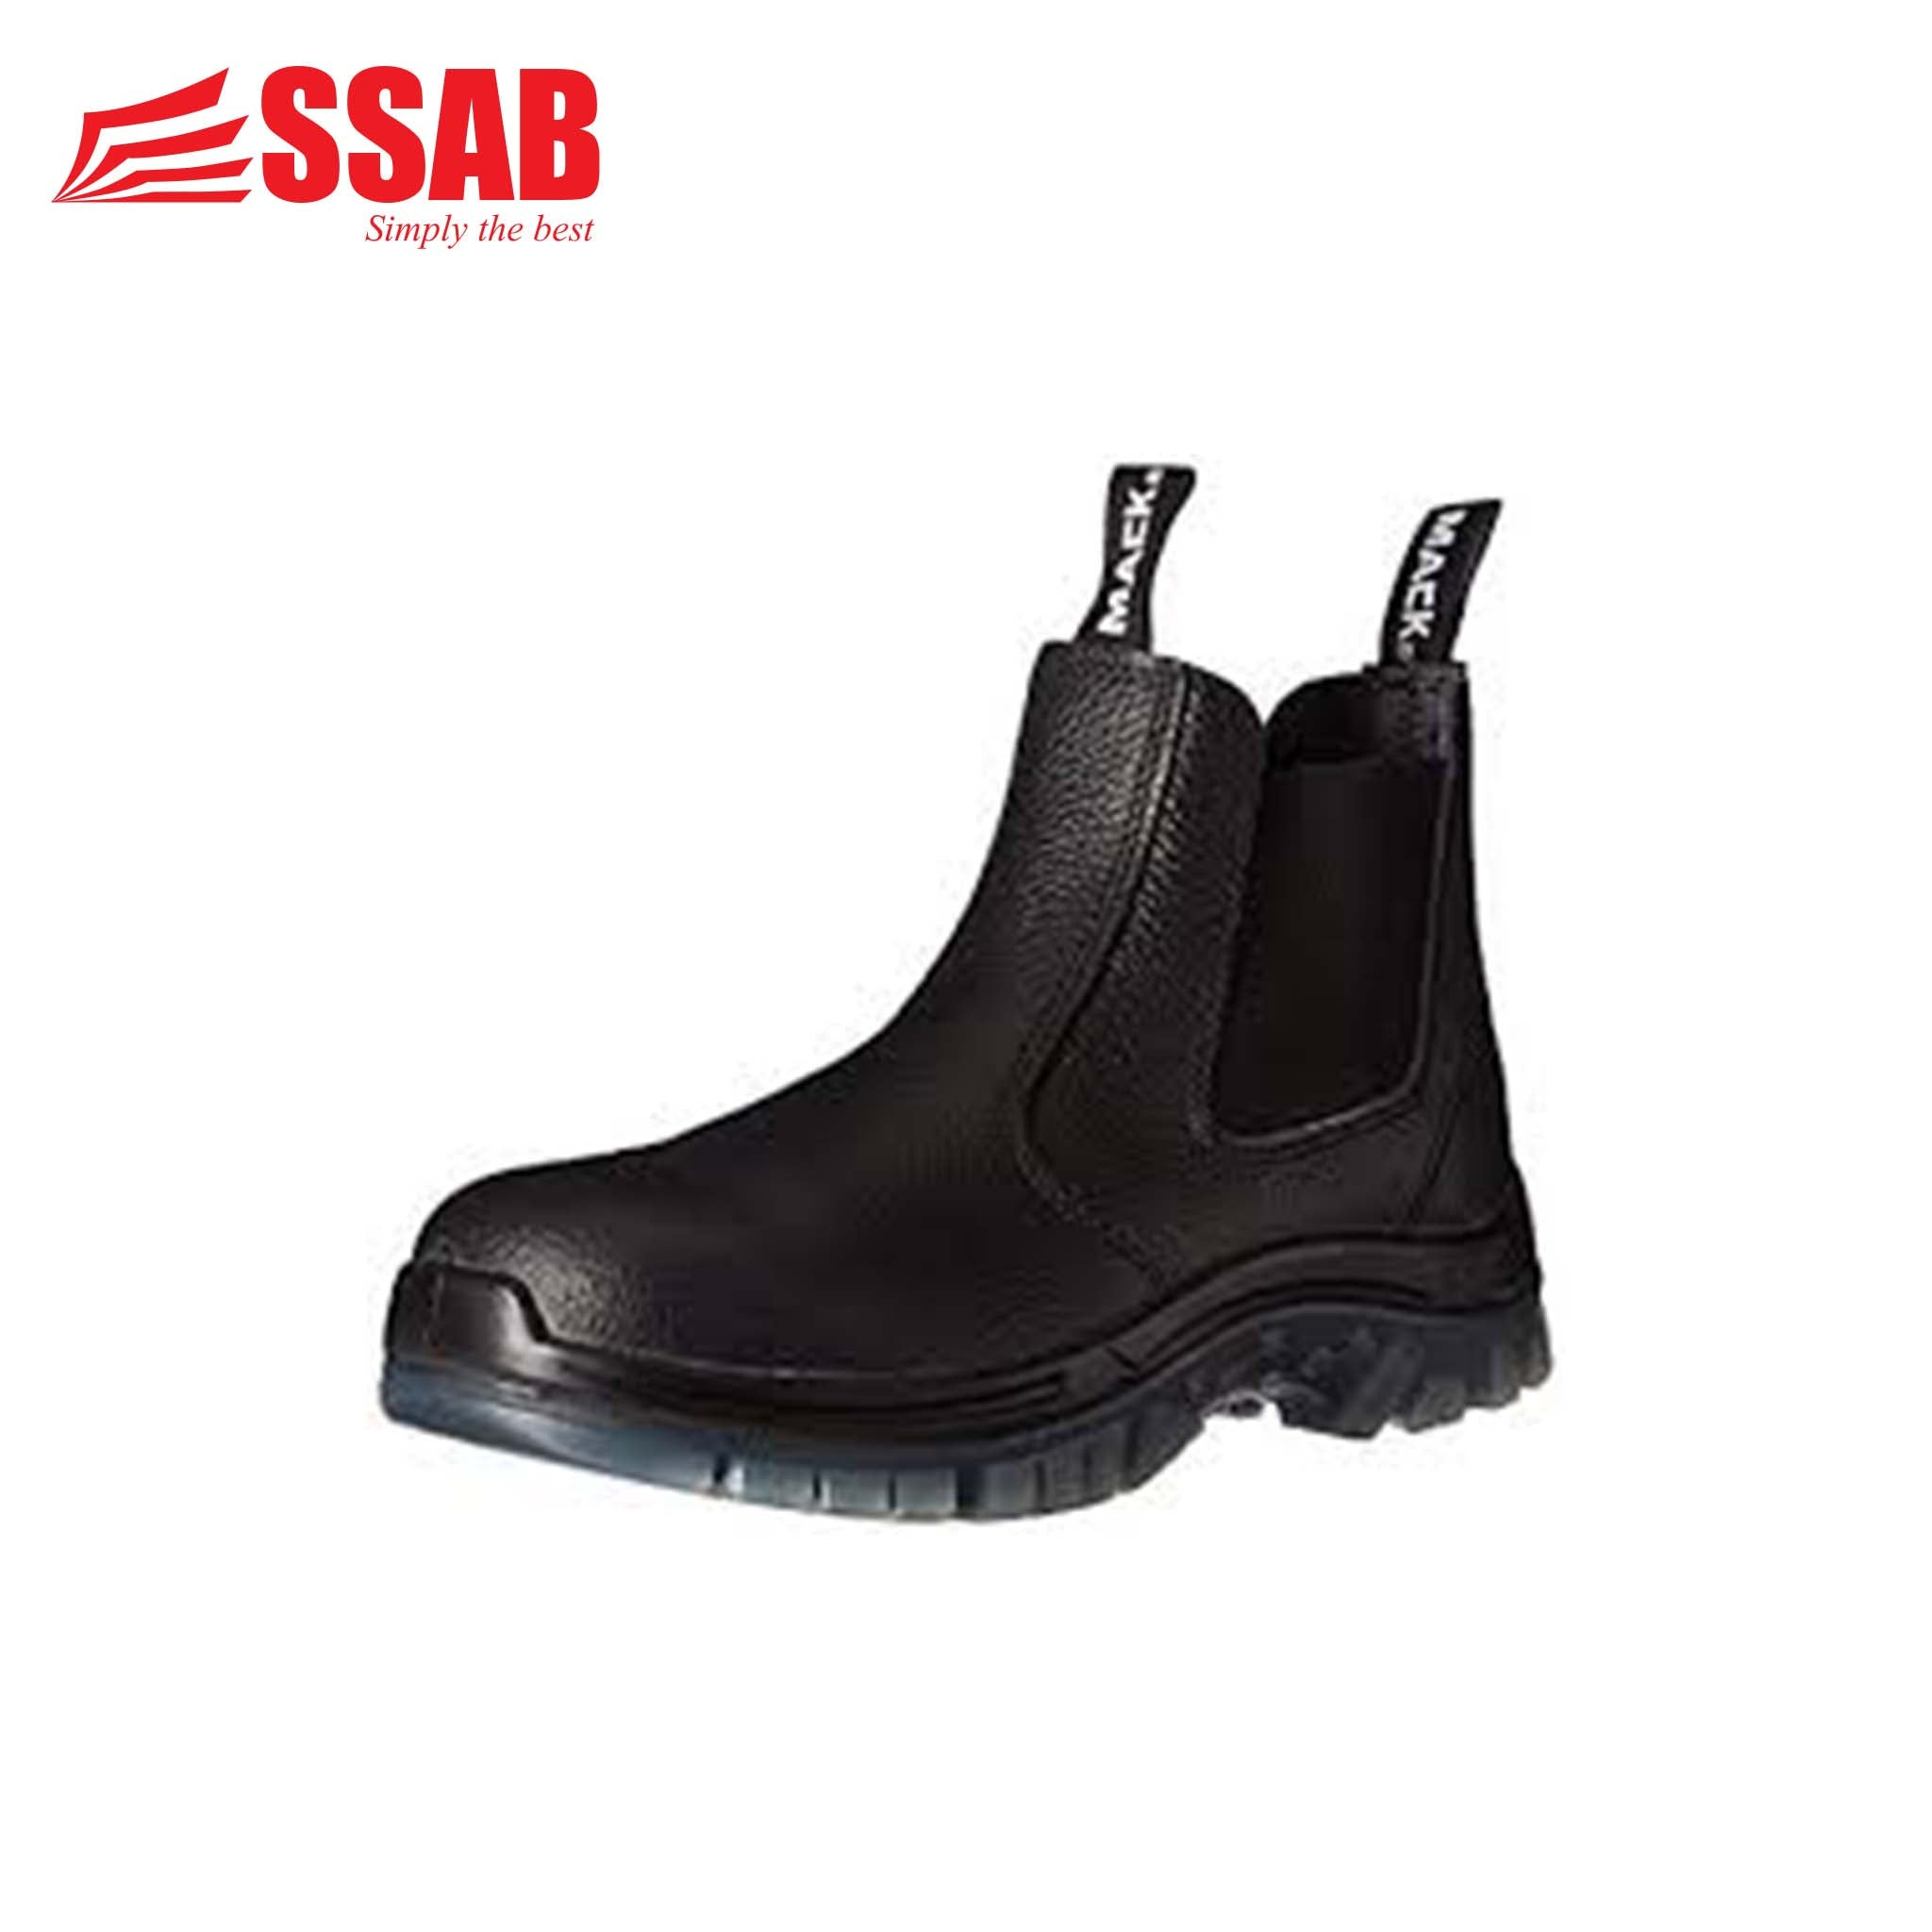 Mac Tradie Safety Boots